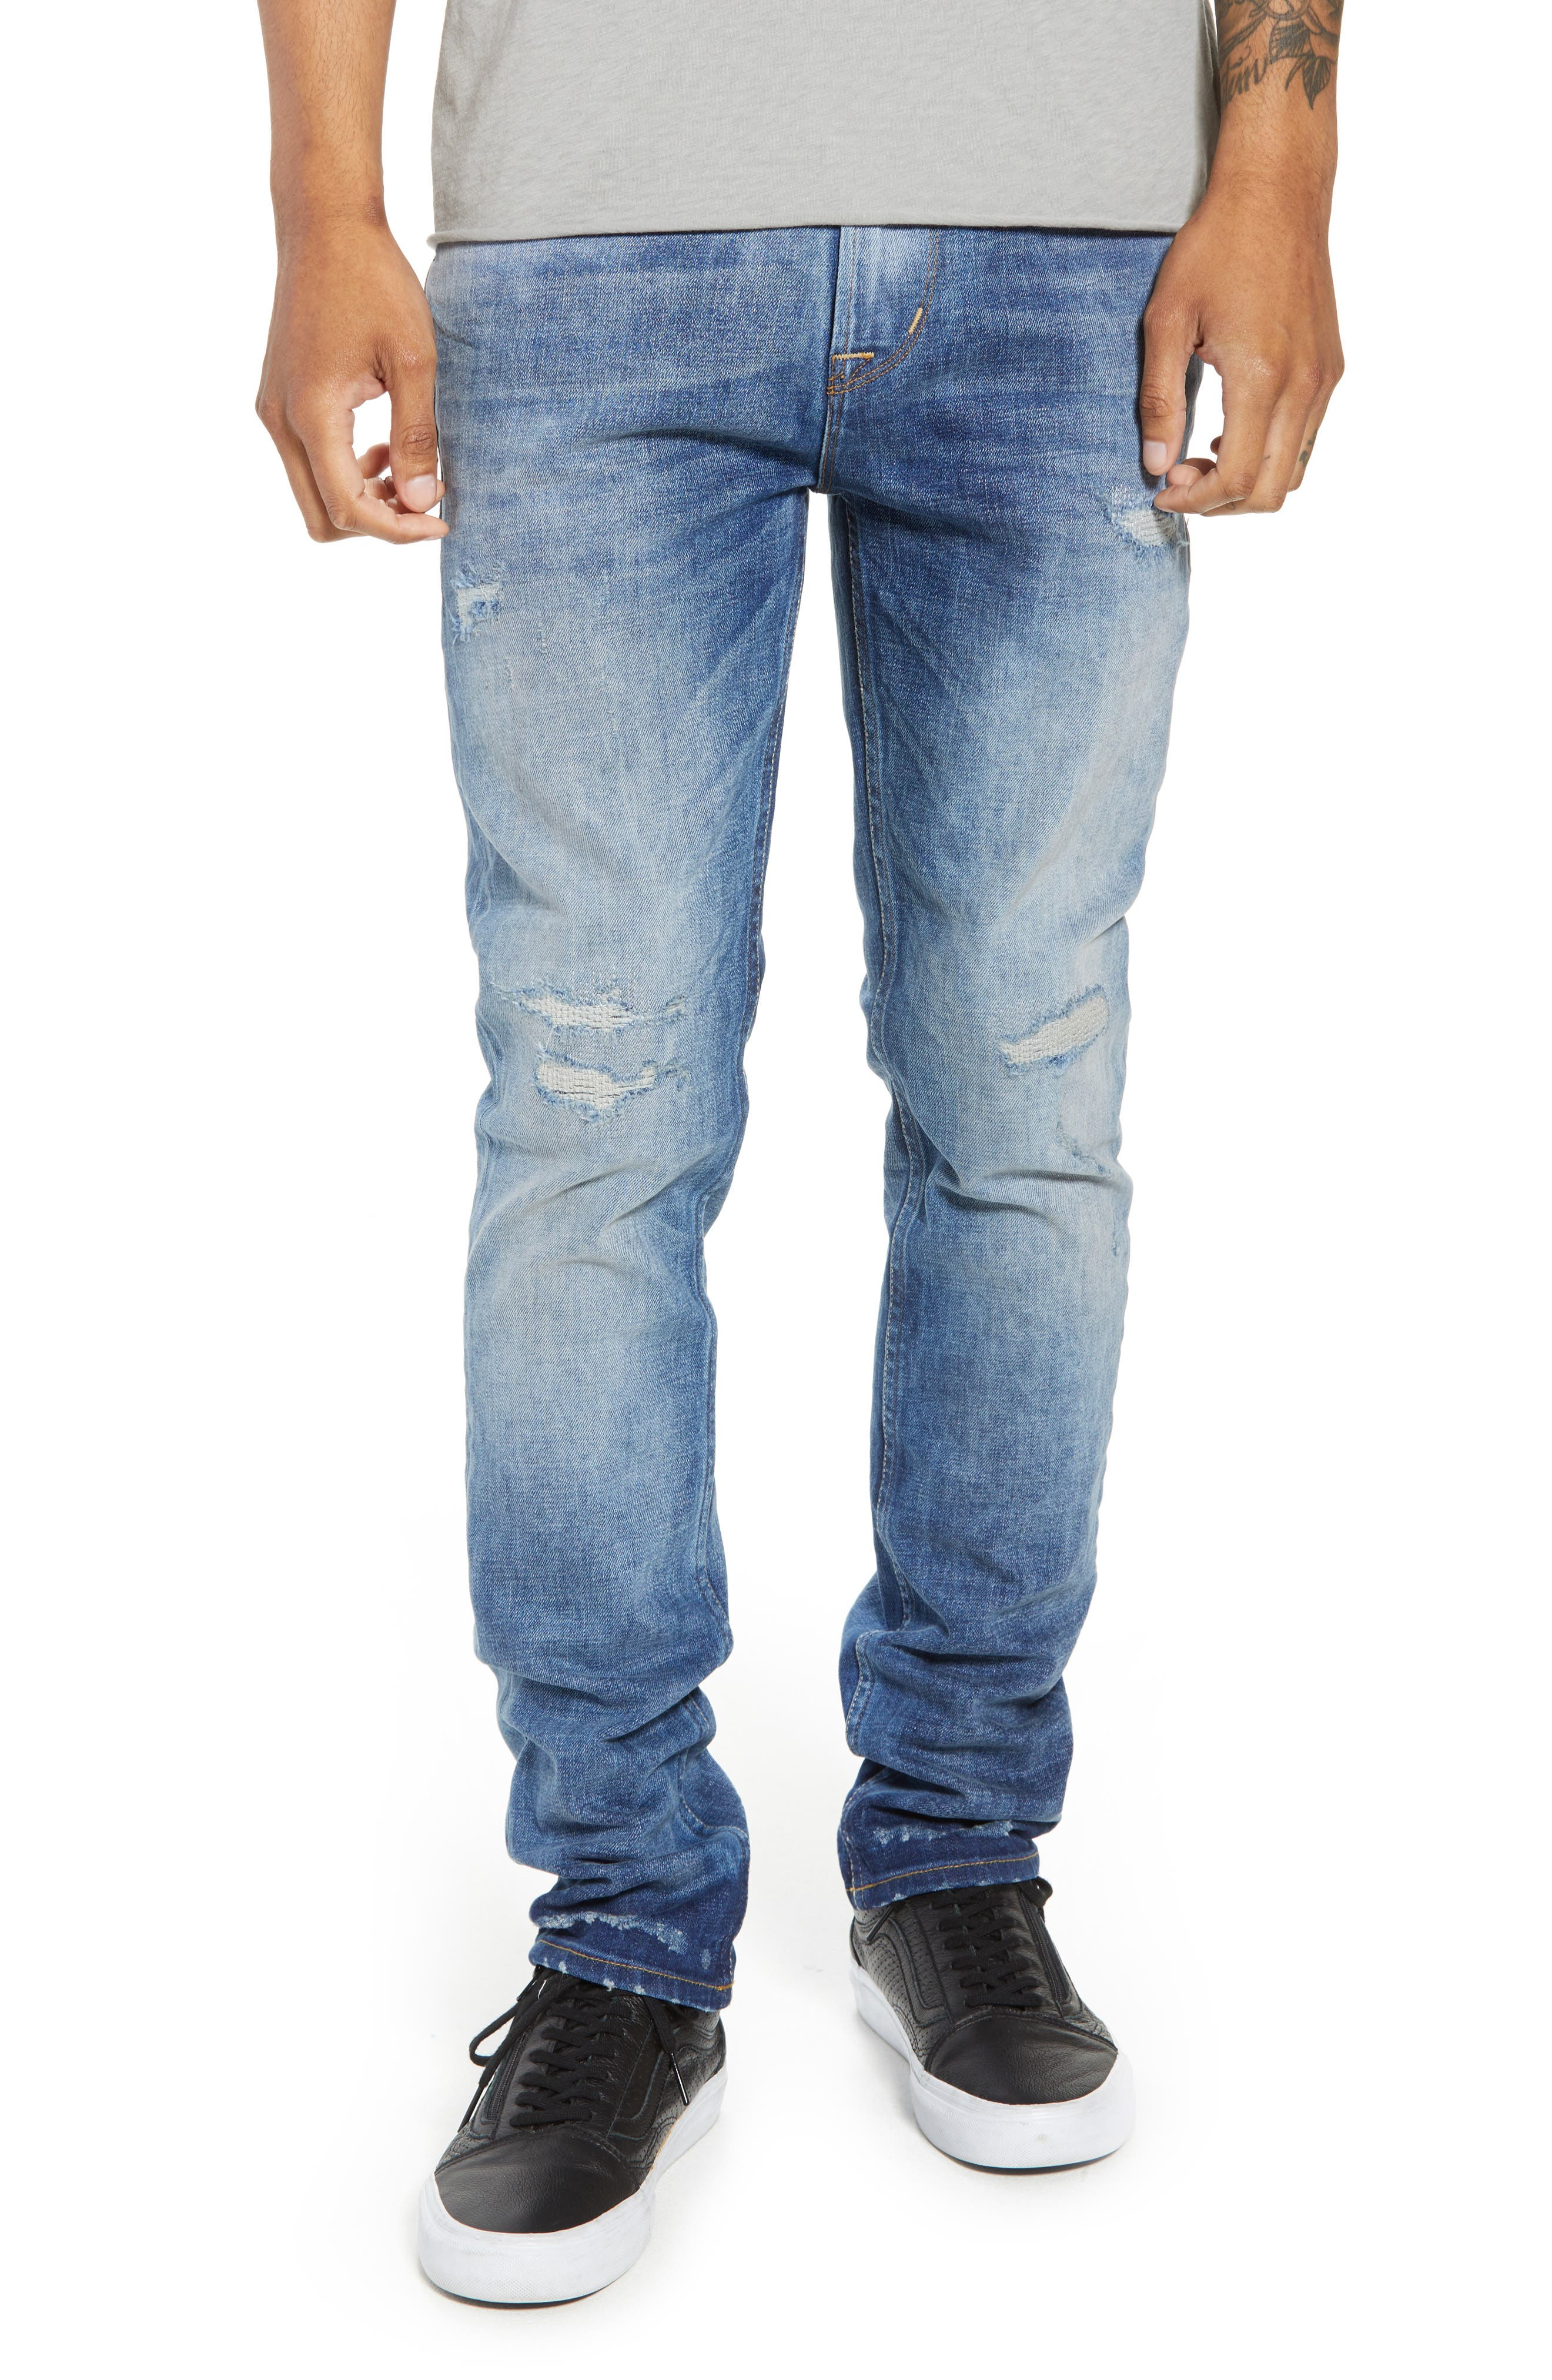 Axl Skinny Fit Jeans,                             Main thumbnail 1, color,                             RIDE OUT